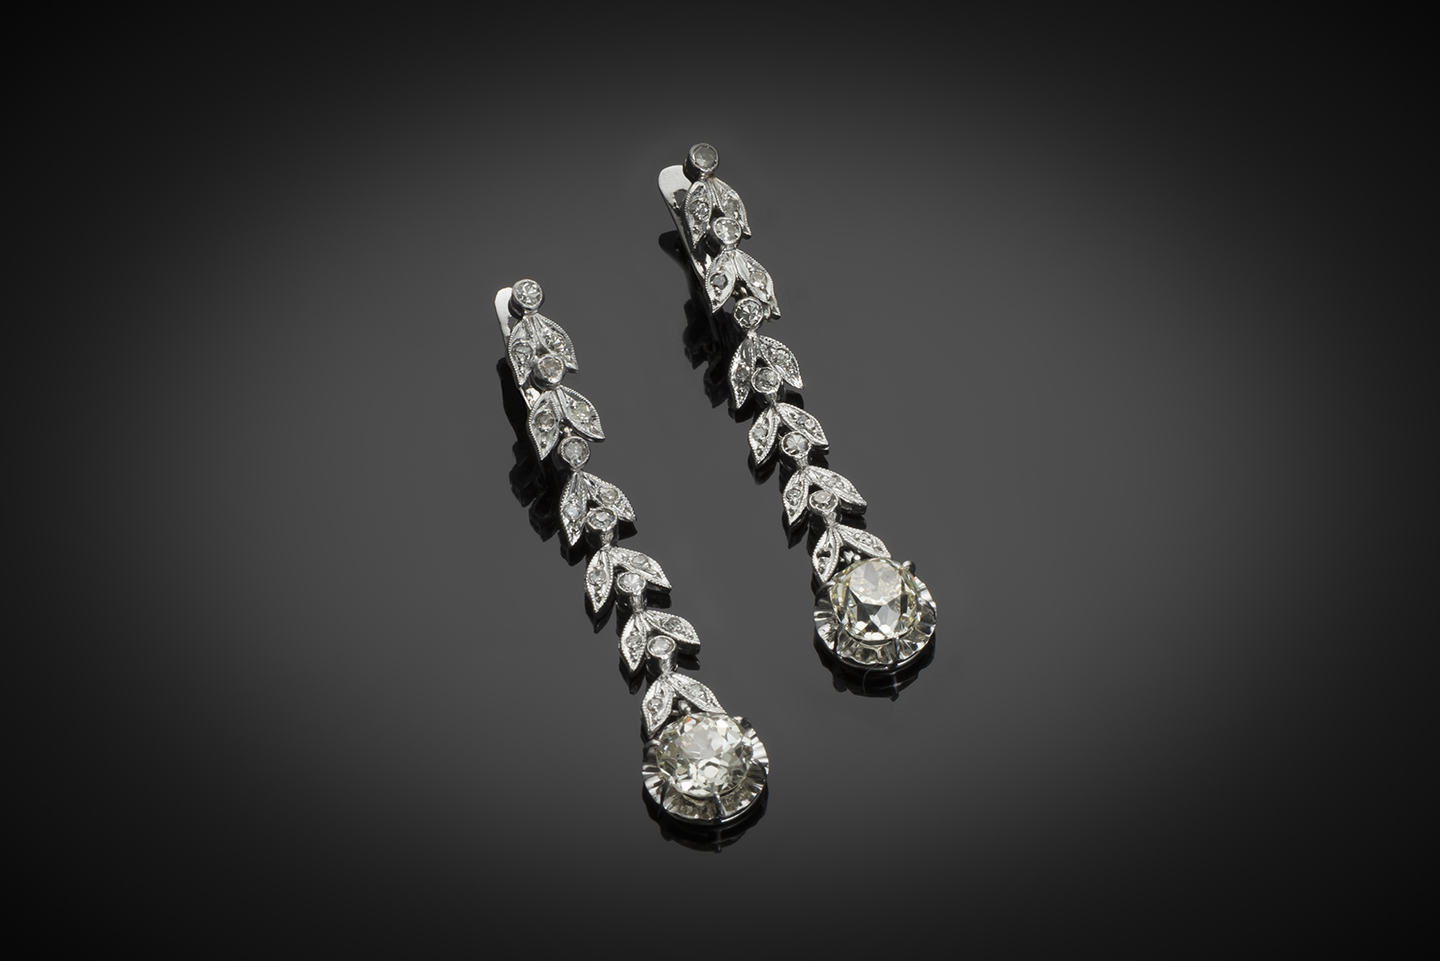 Pendants d'oreilles diamants (3,50 carats) vers 1935-1